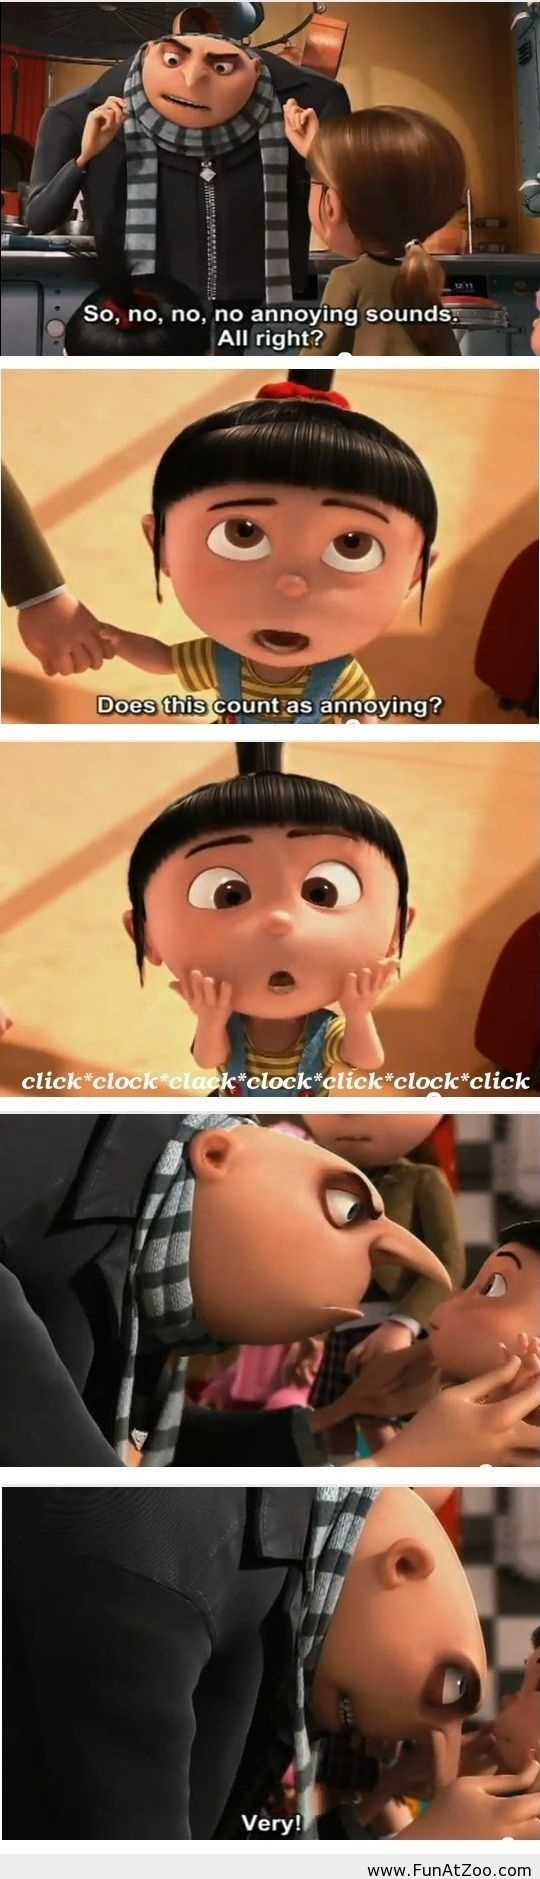 This little girl from Despicable Me is awesome – Funny Picture